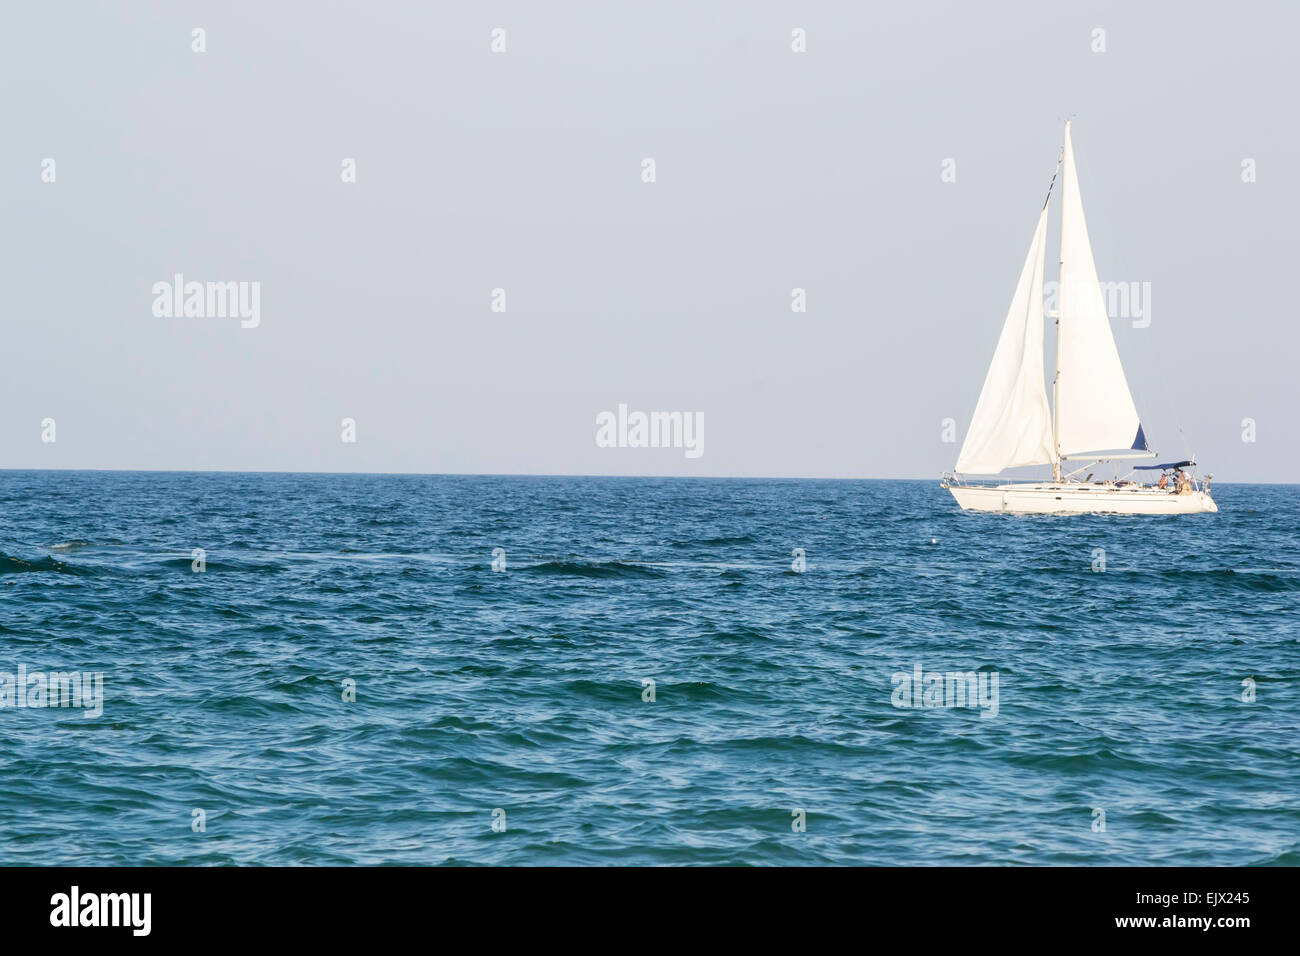 Sail boat navigating towards east on calm blue sea - Stock Image